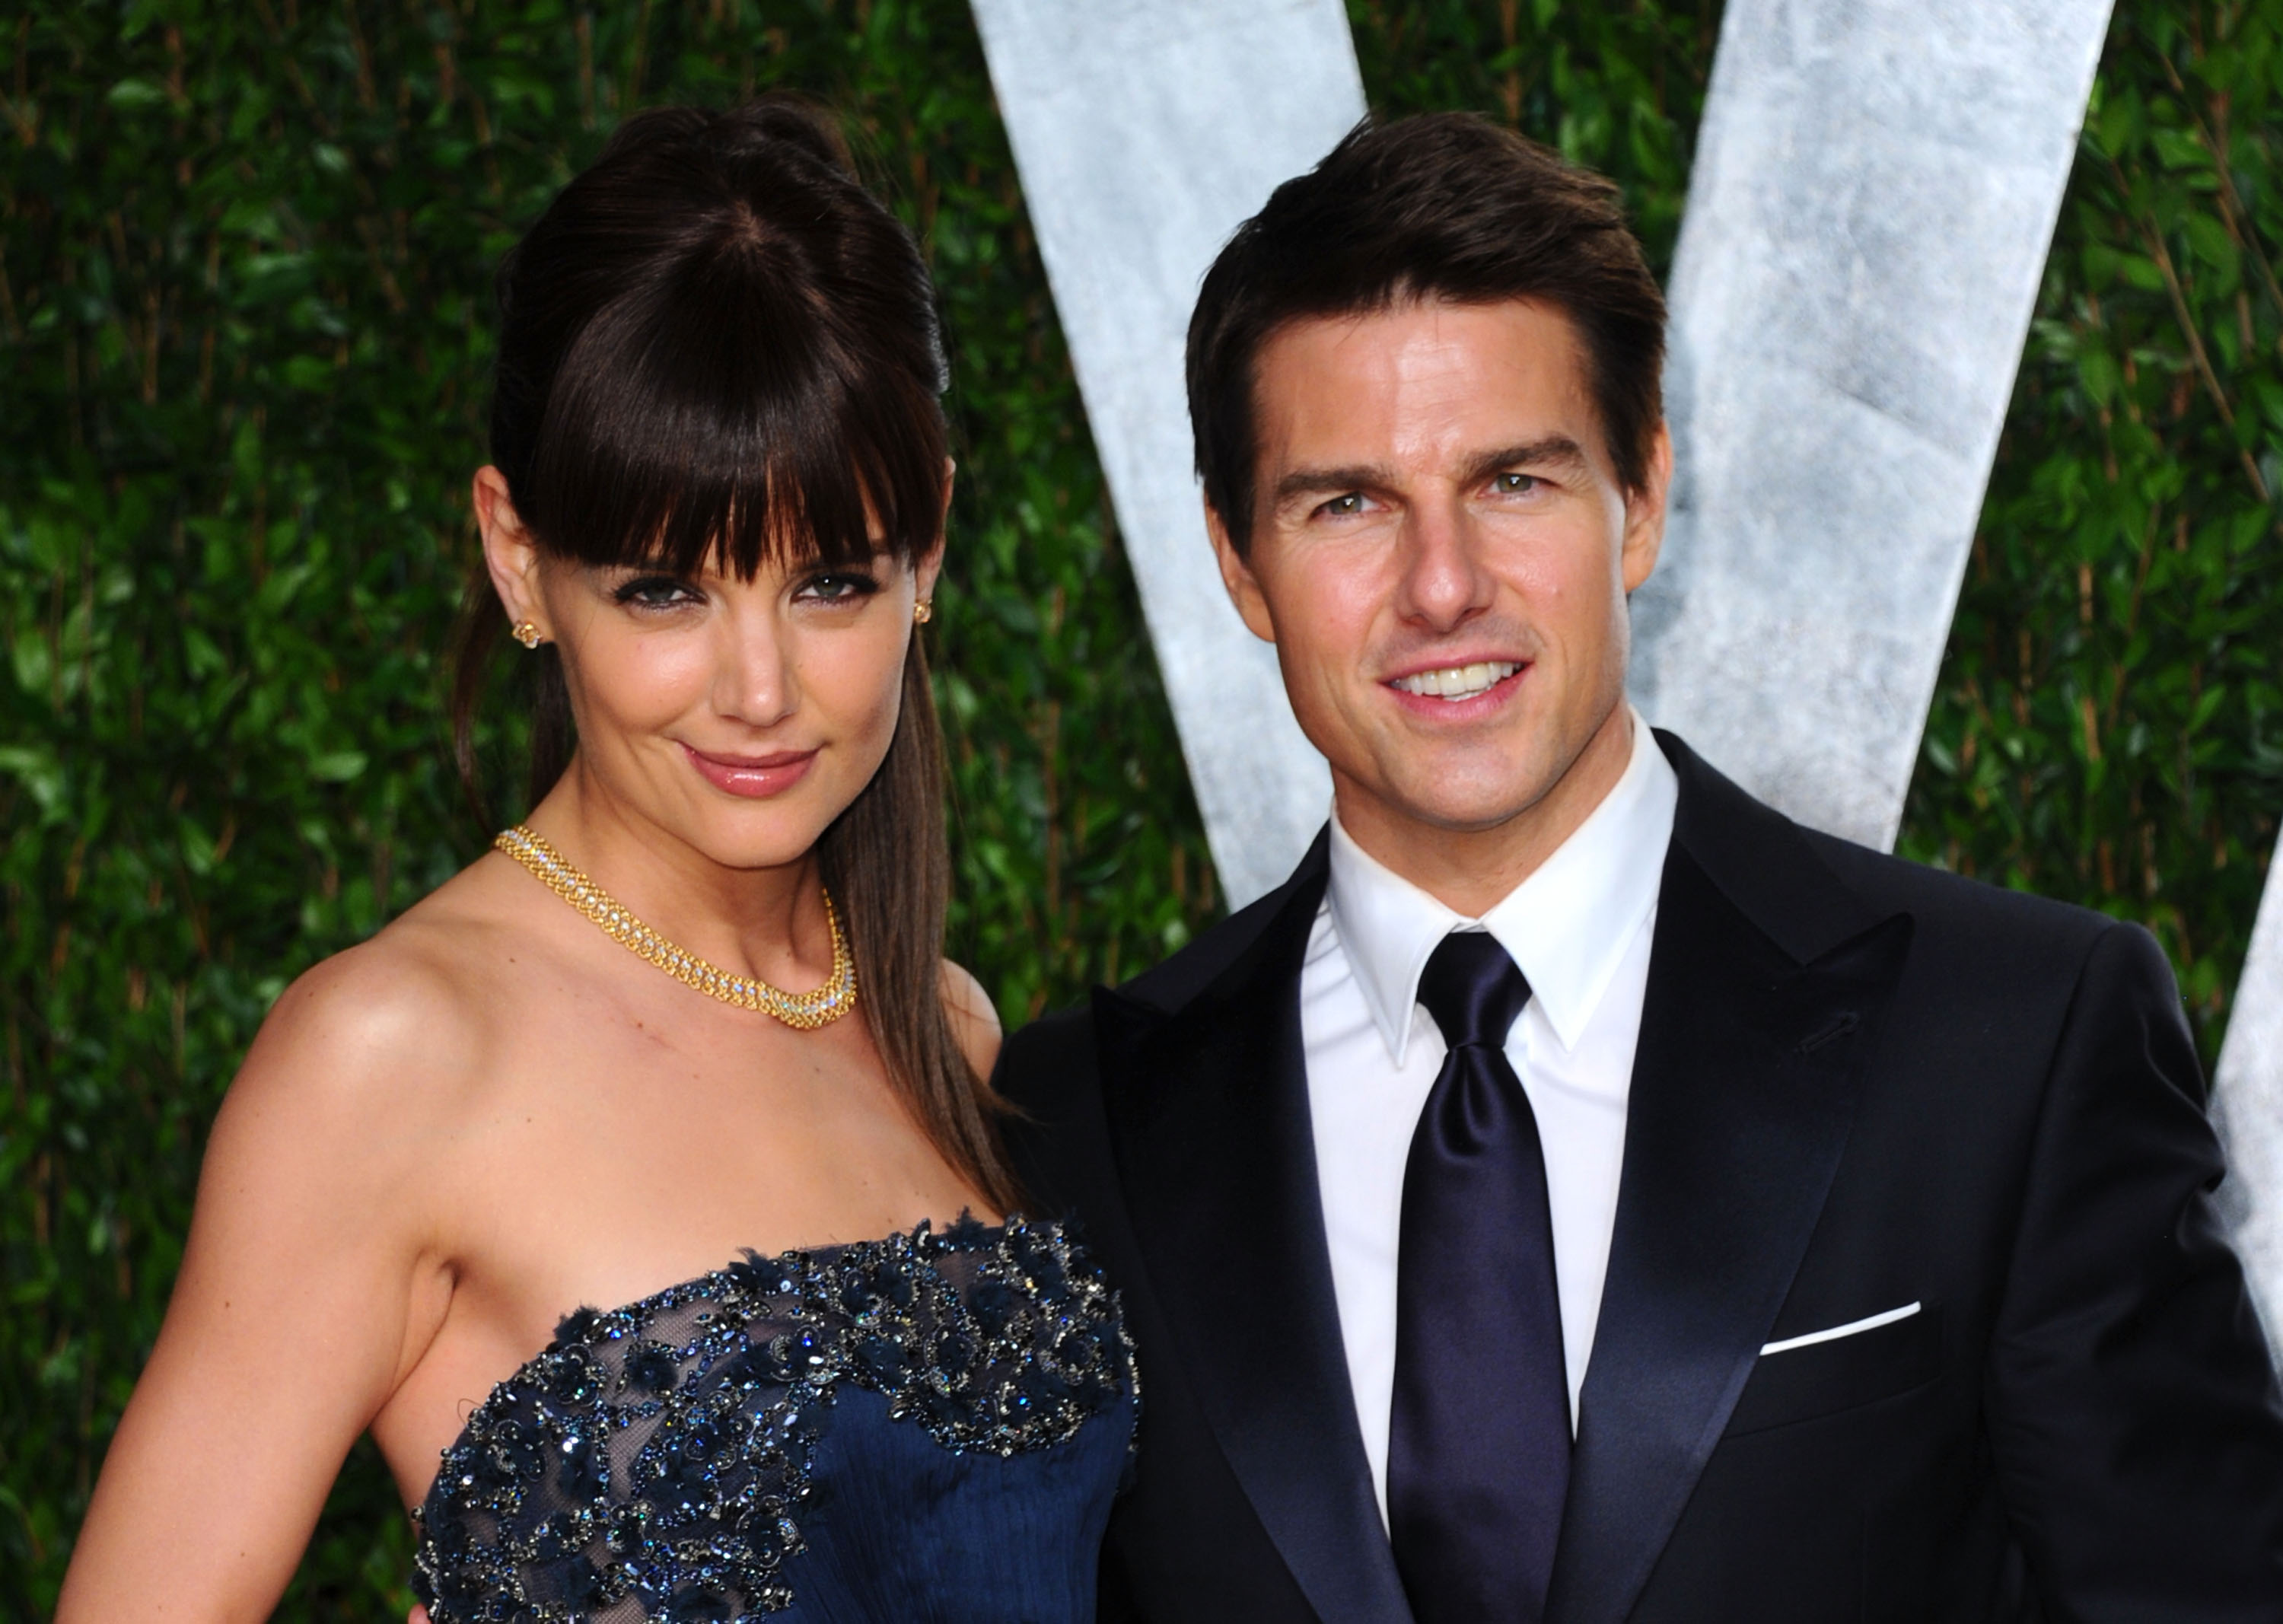 Katie Holmes and Tom Cruise (Source: Getty Images)